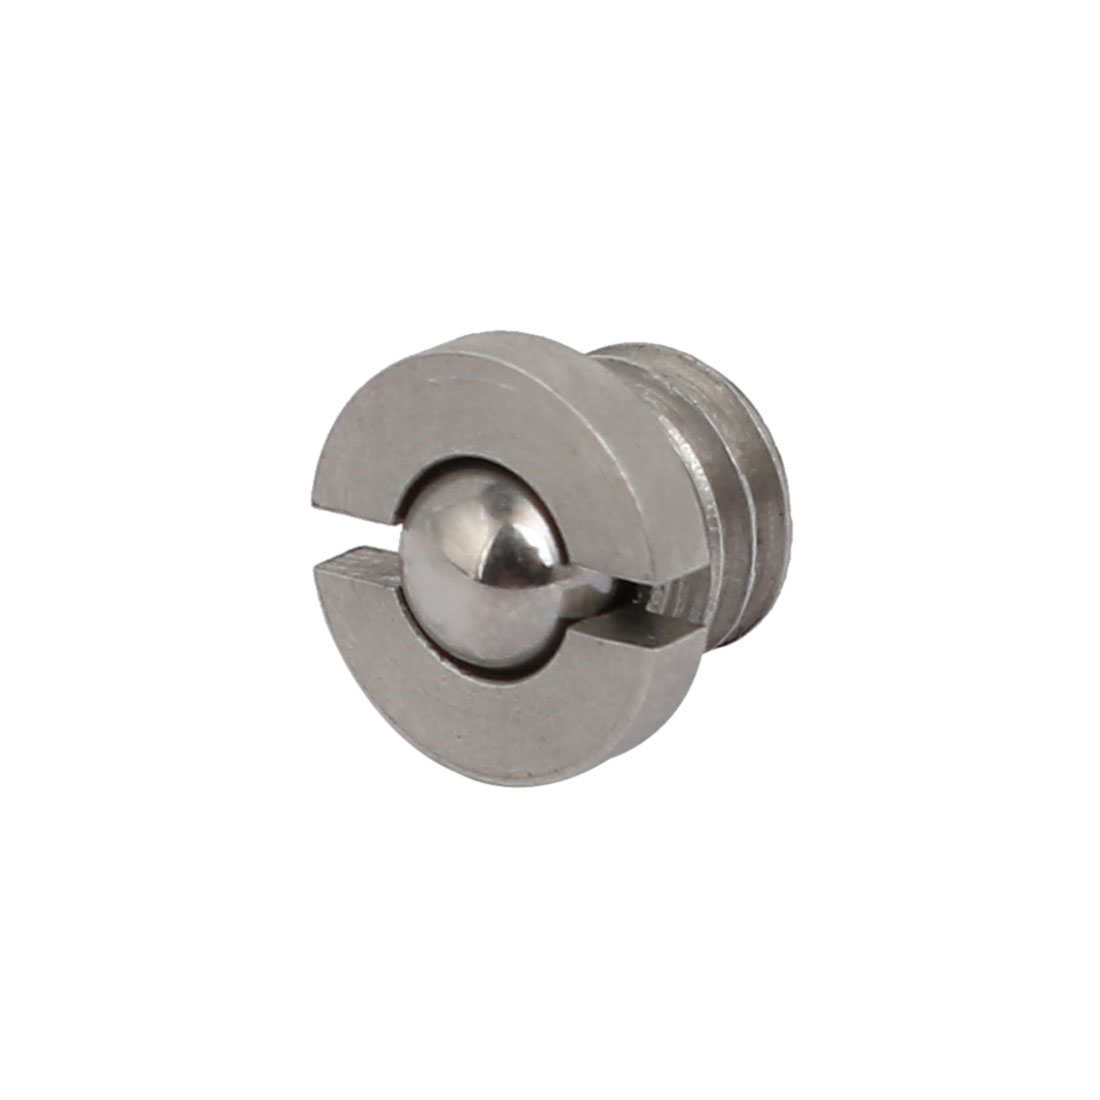 Unique Bargains 3Pcs Stainless Steel M6x4.5mm 6.3N End Force Slotted Flange Ball Spring Plunger - image 4 of 4